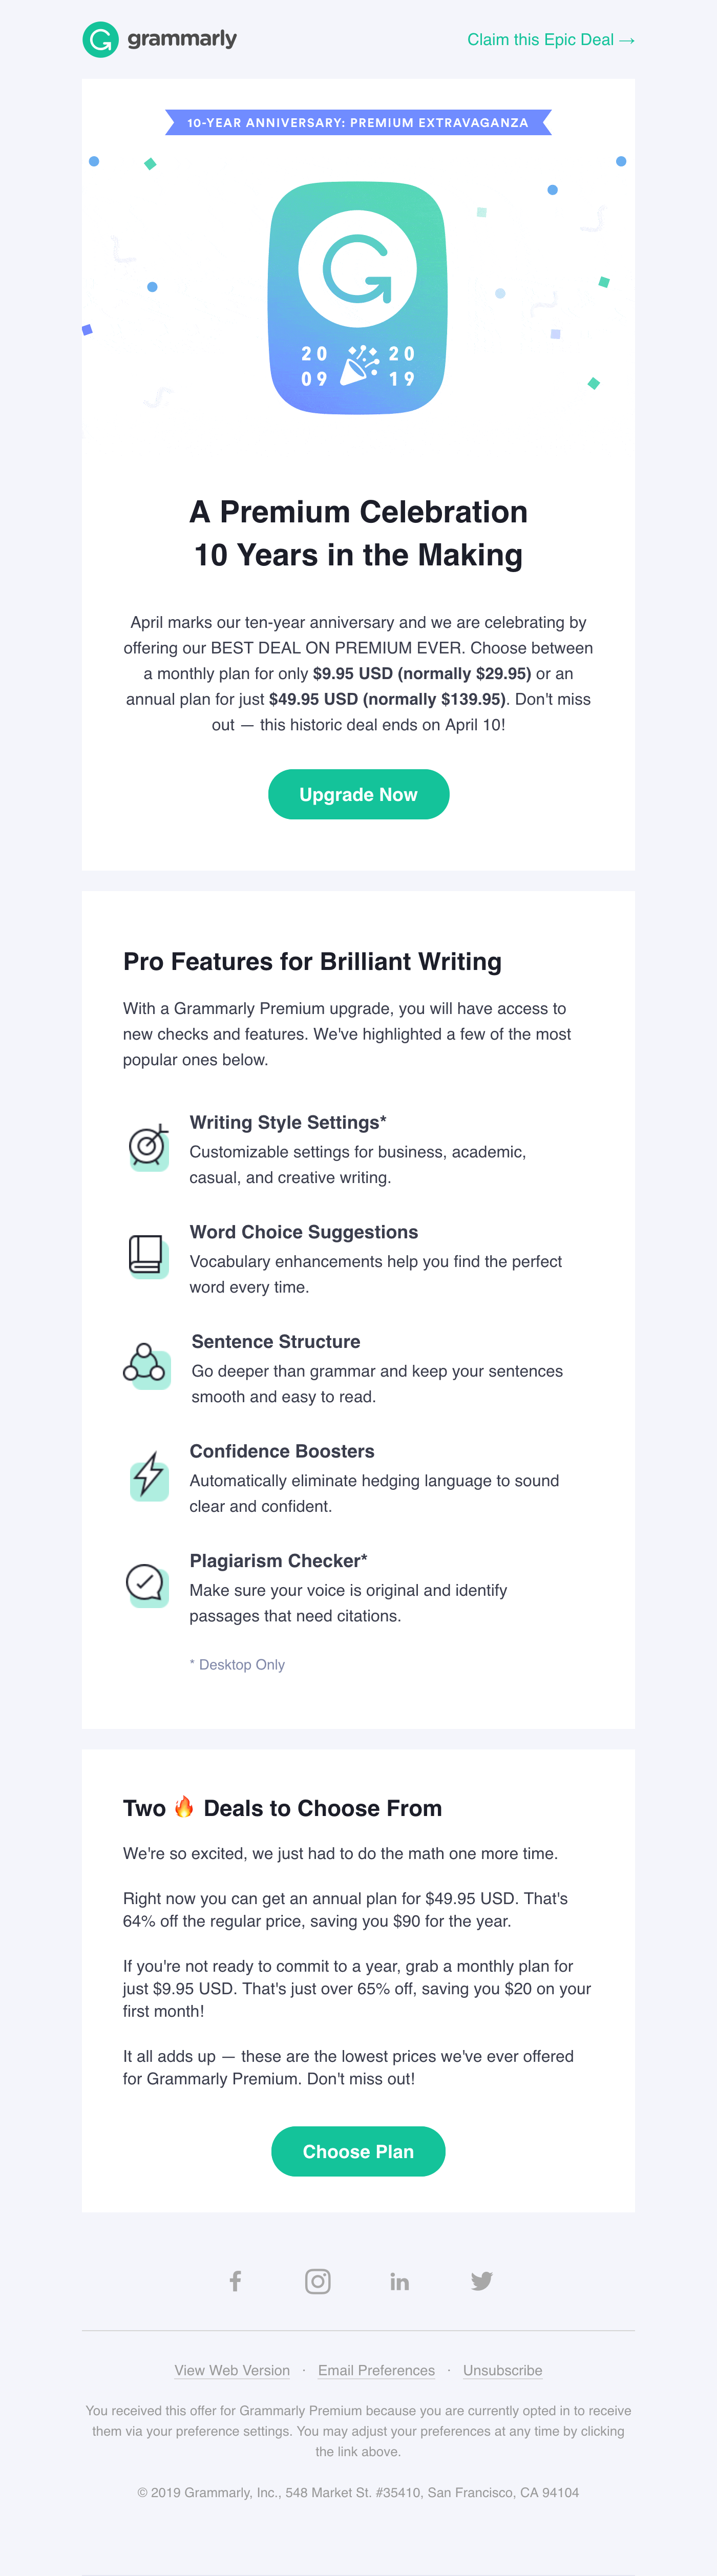 Our Best Upgrade Offer EVER to Celebrate 10 Years of Grammarly